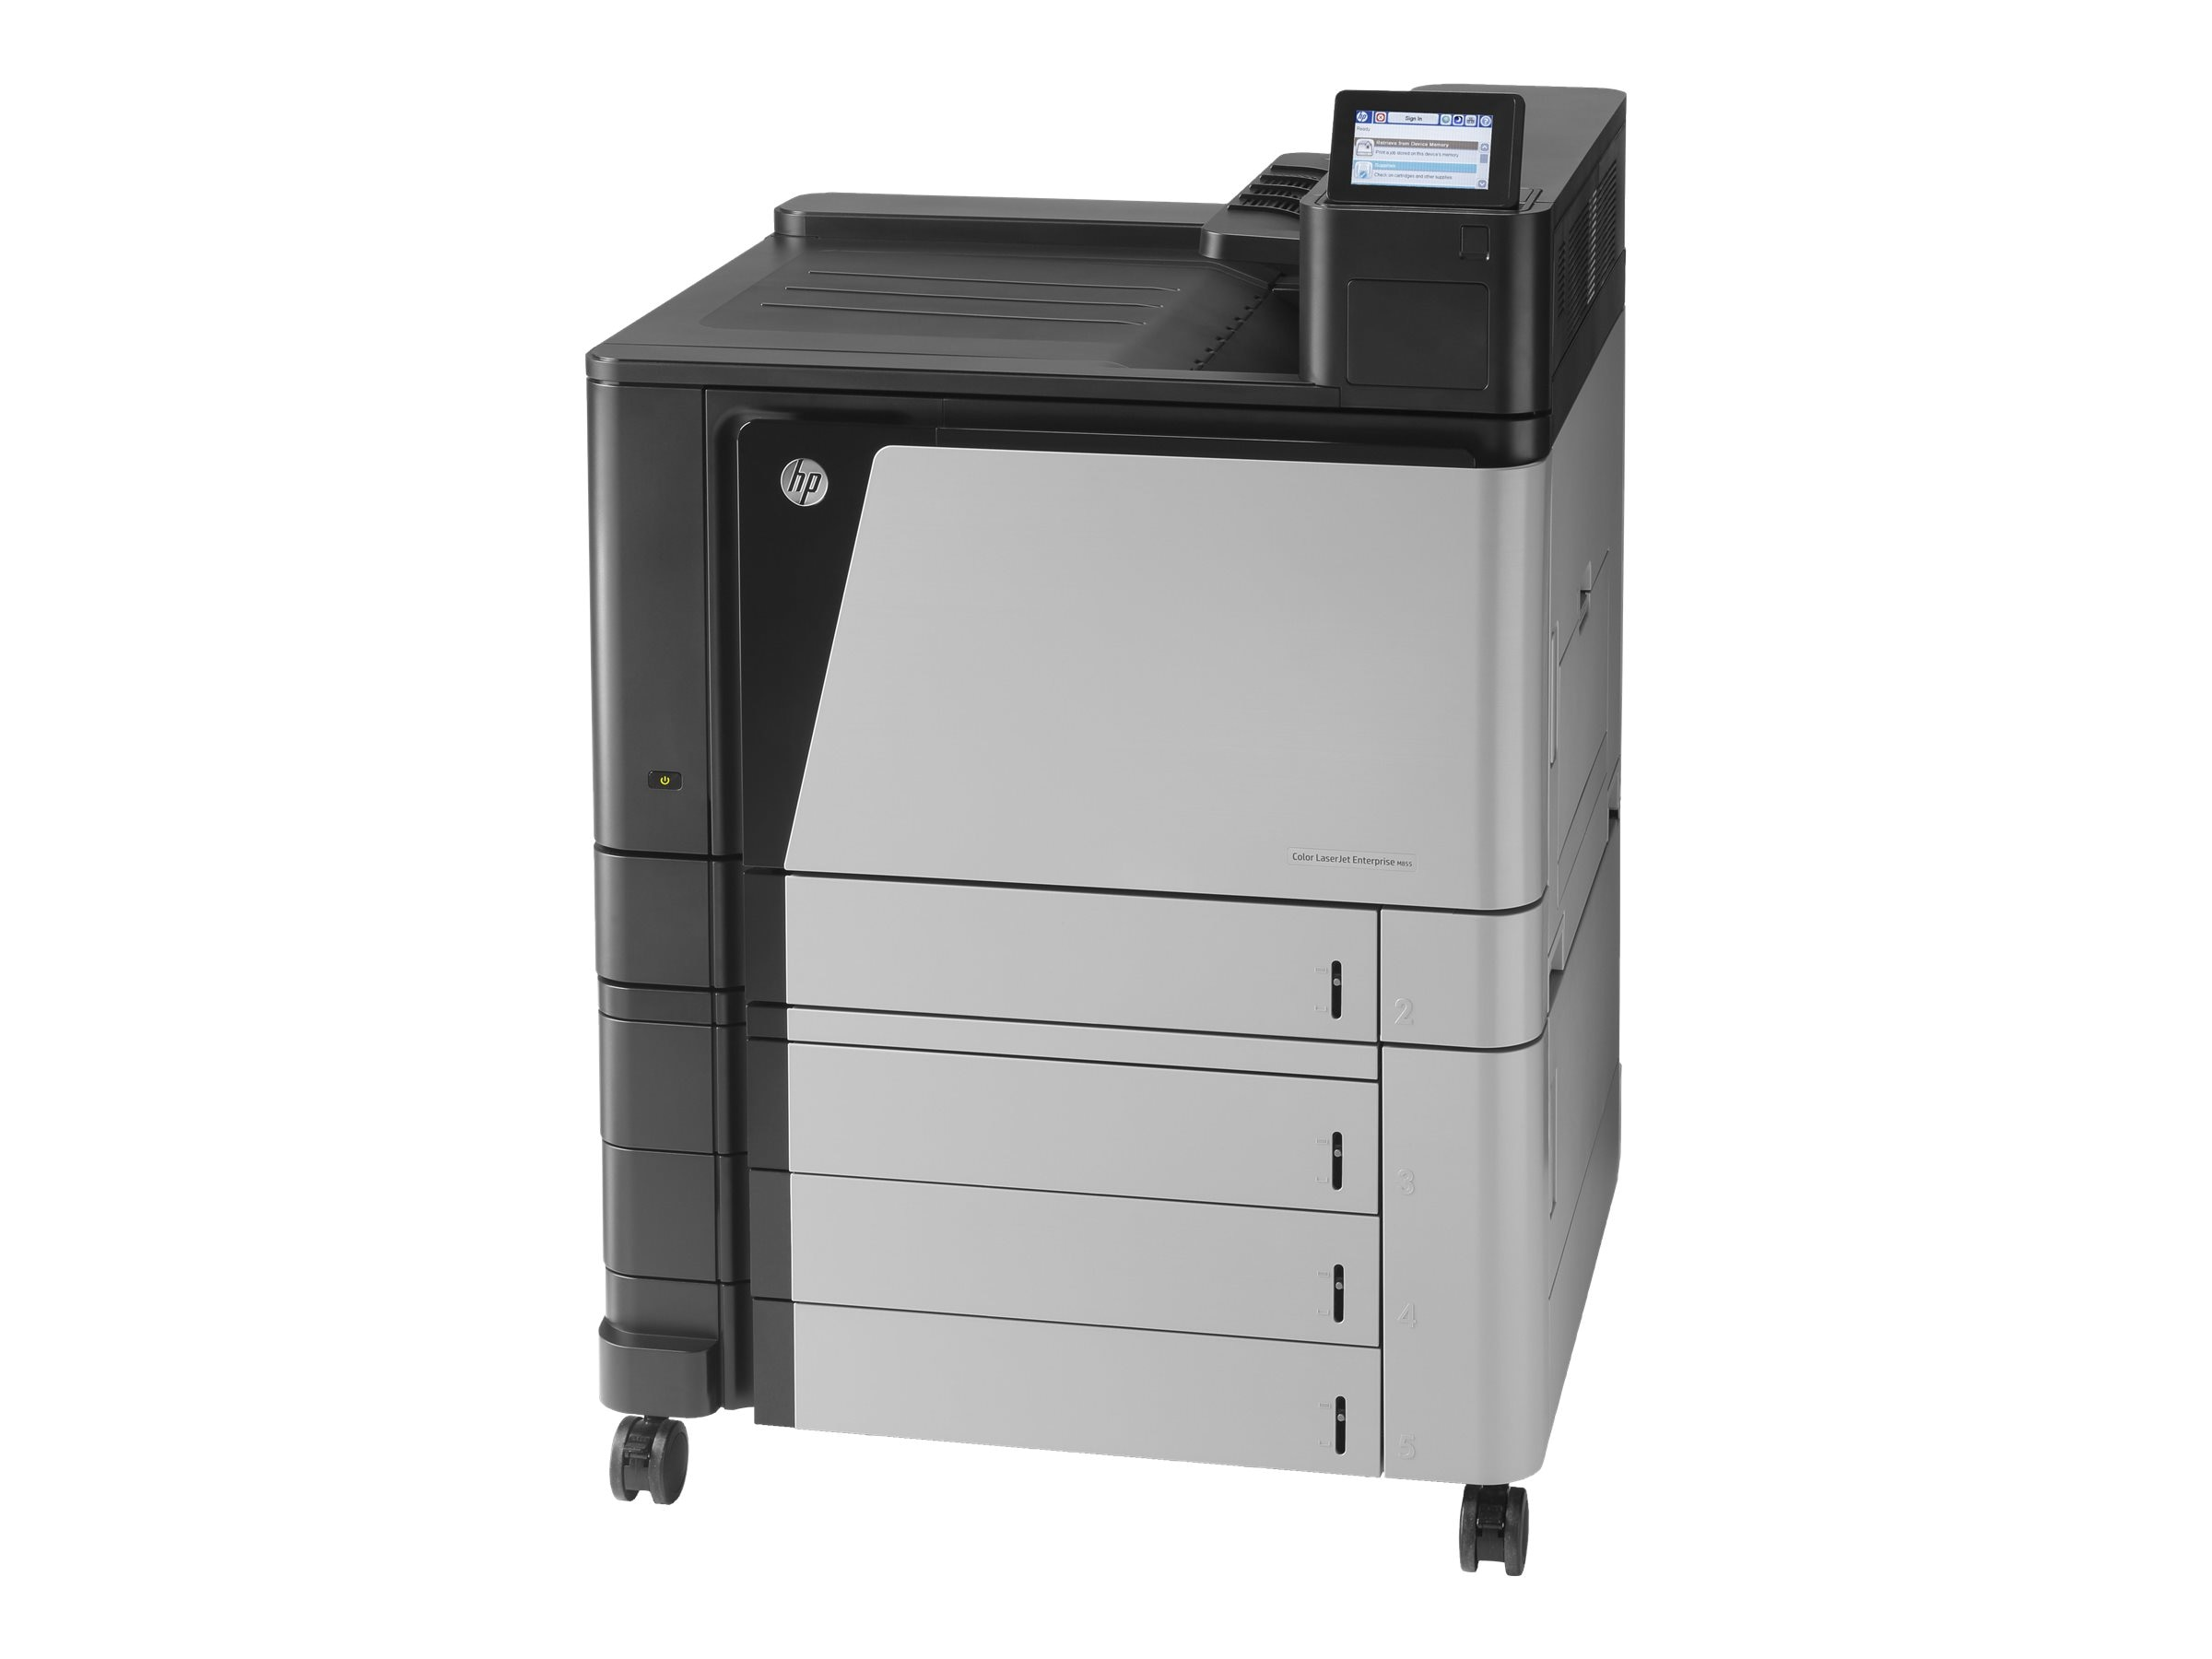 HP Color LaserJet Enterprise M855xh Printer